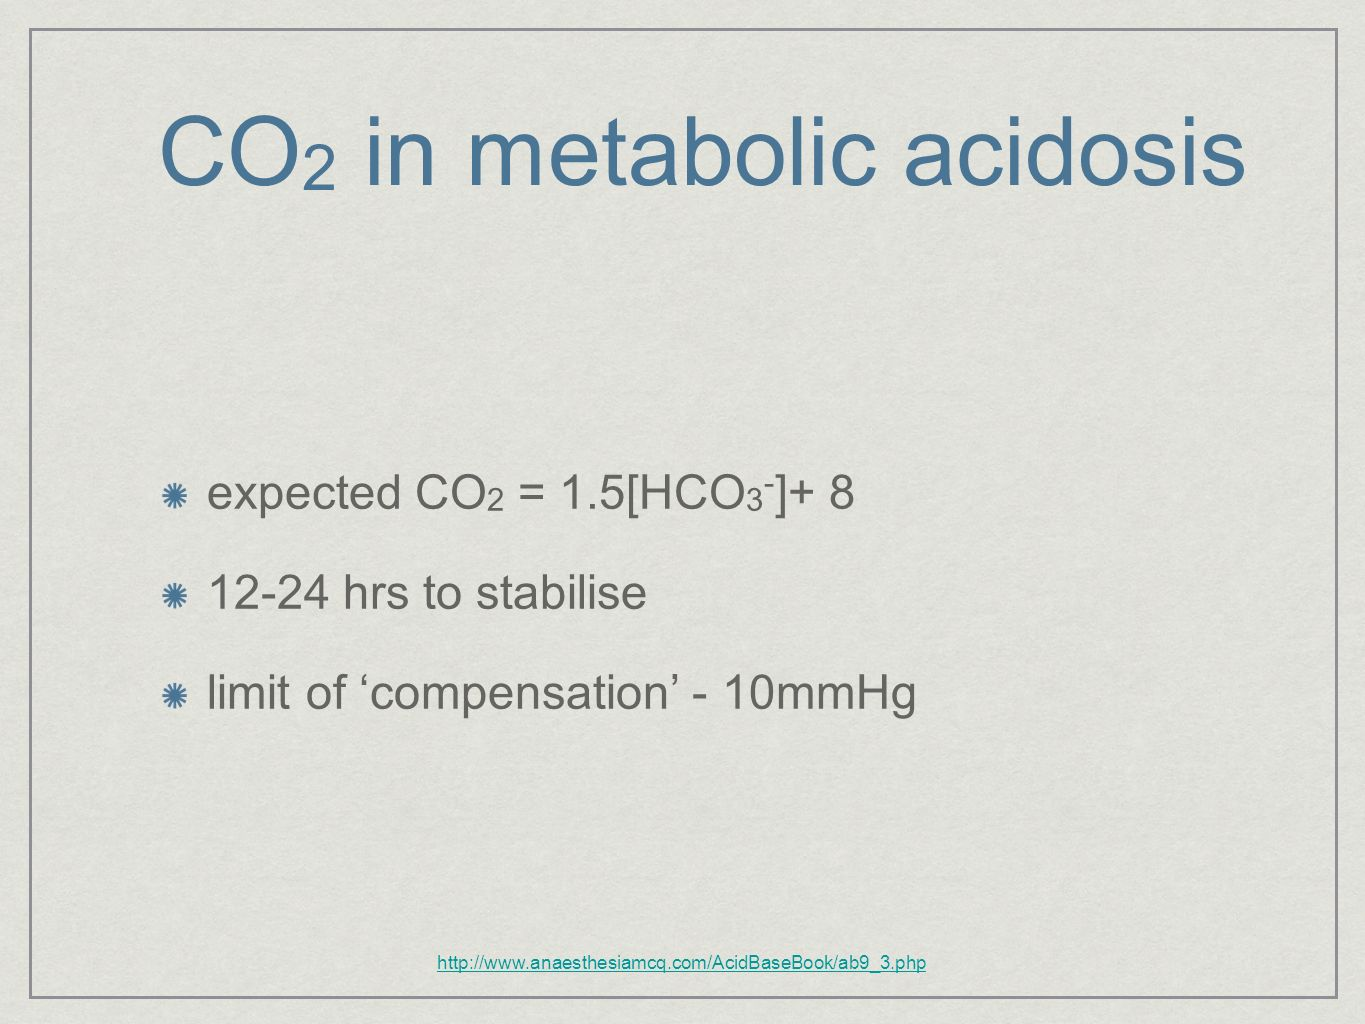 CO2 in metabolic acidosis